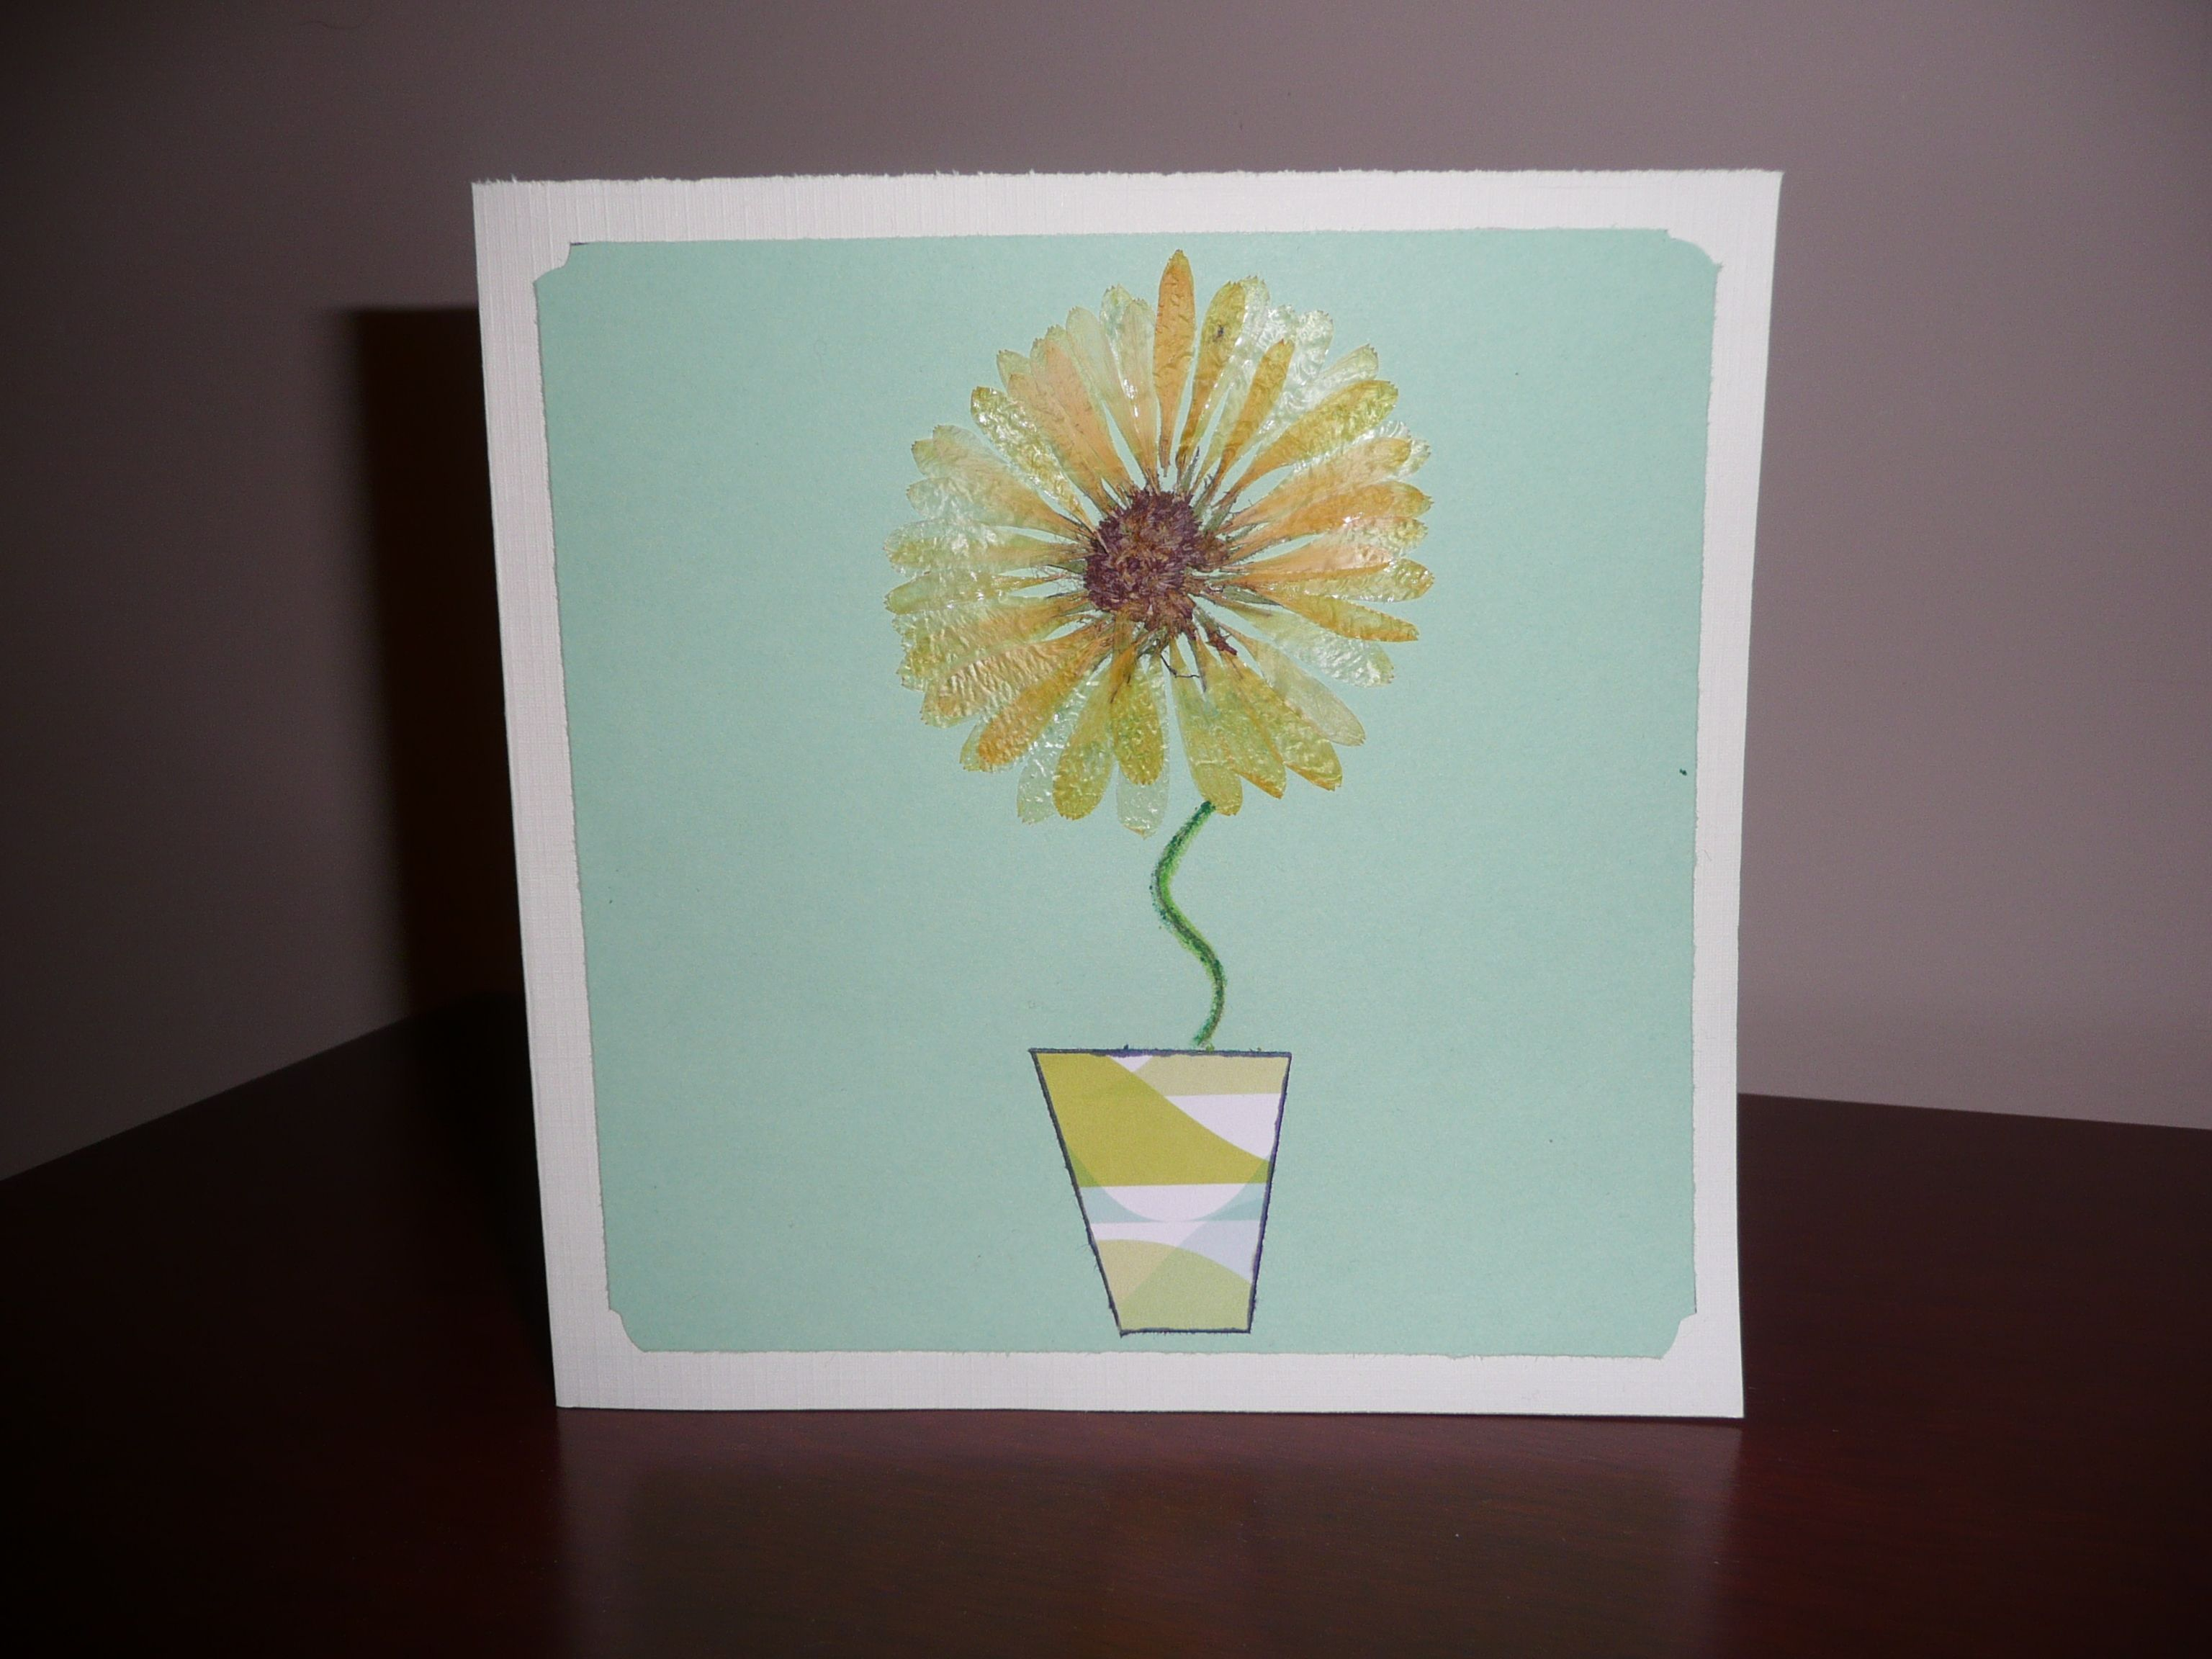 A handmade dried flower greeting card have a dried flower heres a handmade dried flower greeting card have a dried flower heres a pressed flower kristyandbryce Gallery